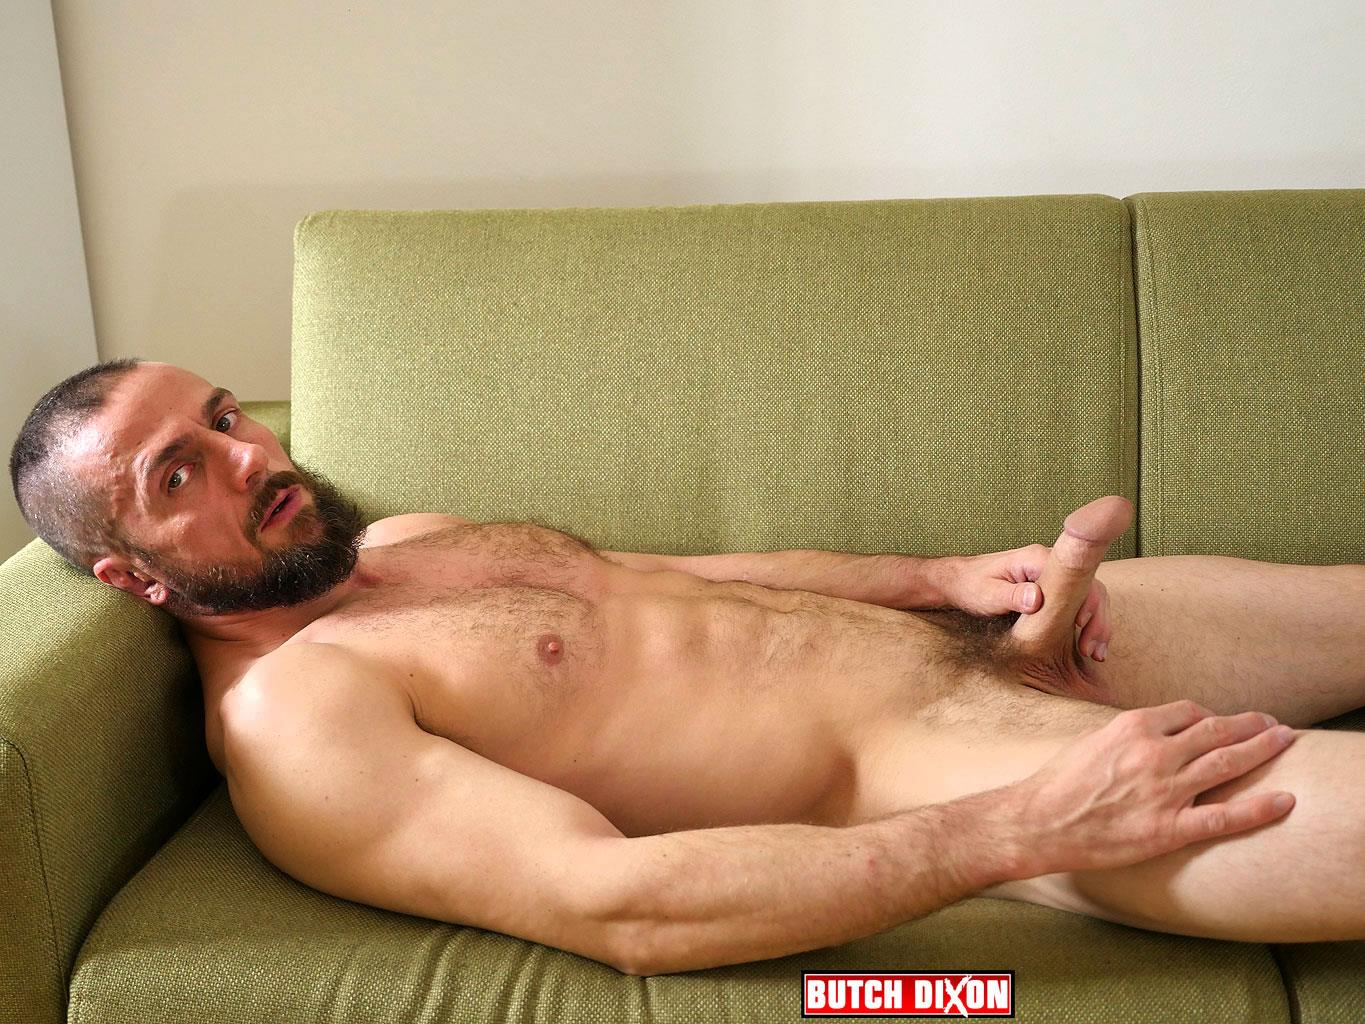 Butch-Dixon-Erik-Lenn-and-Mike-Bourne-Masculine-Guys-Fucking-Bareback-Amateur-Gay-Porn-01 Beefy Masculine Guys Fucking Bareback With A Big Uncut Cock